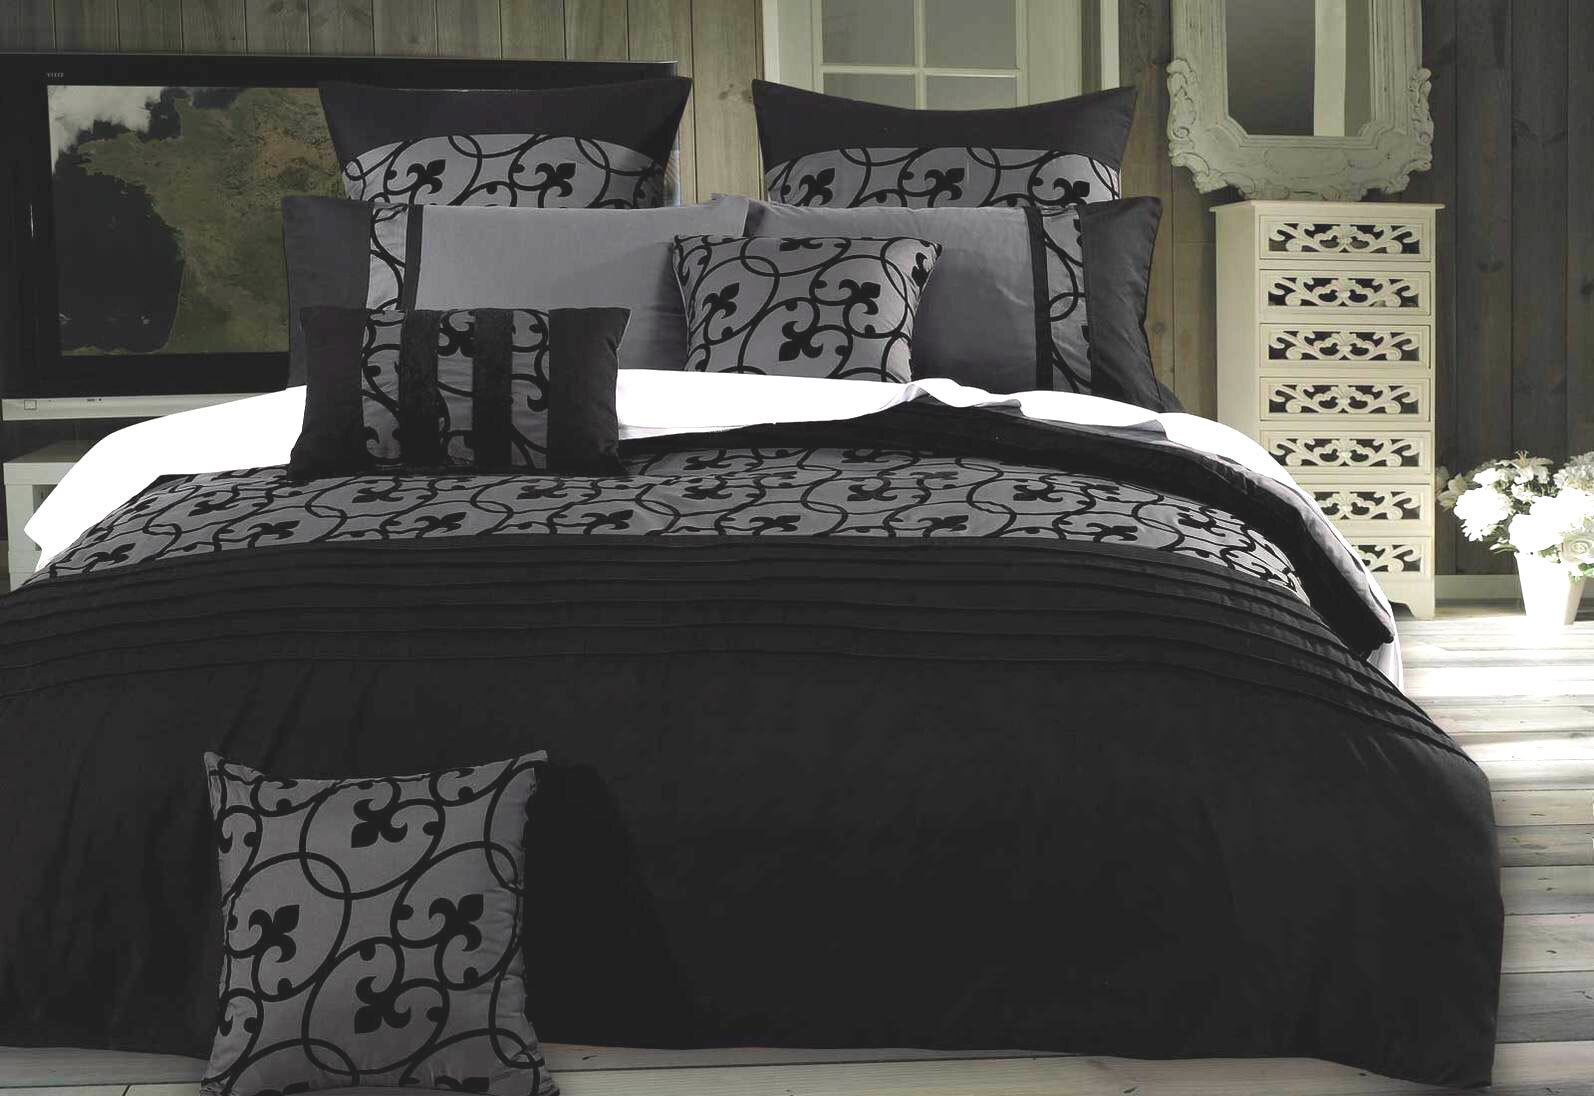 Double Doona Covers Lyde Charcoal Grey Duvet Cover Set Black Flocking Design